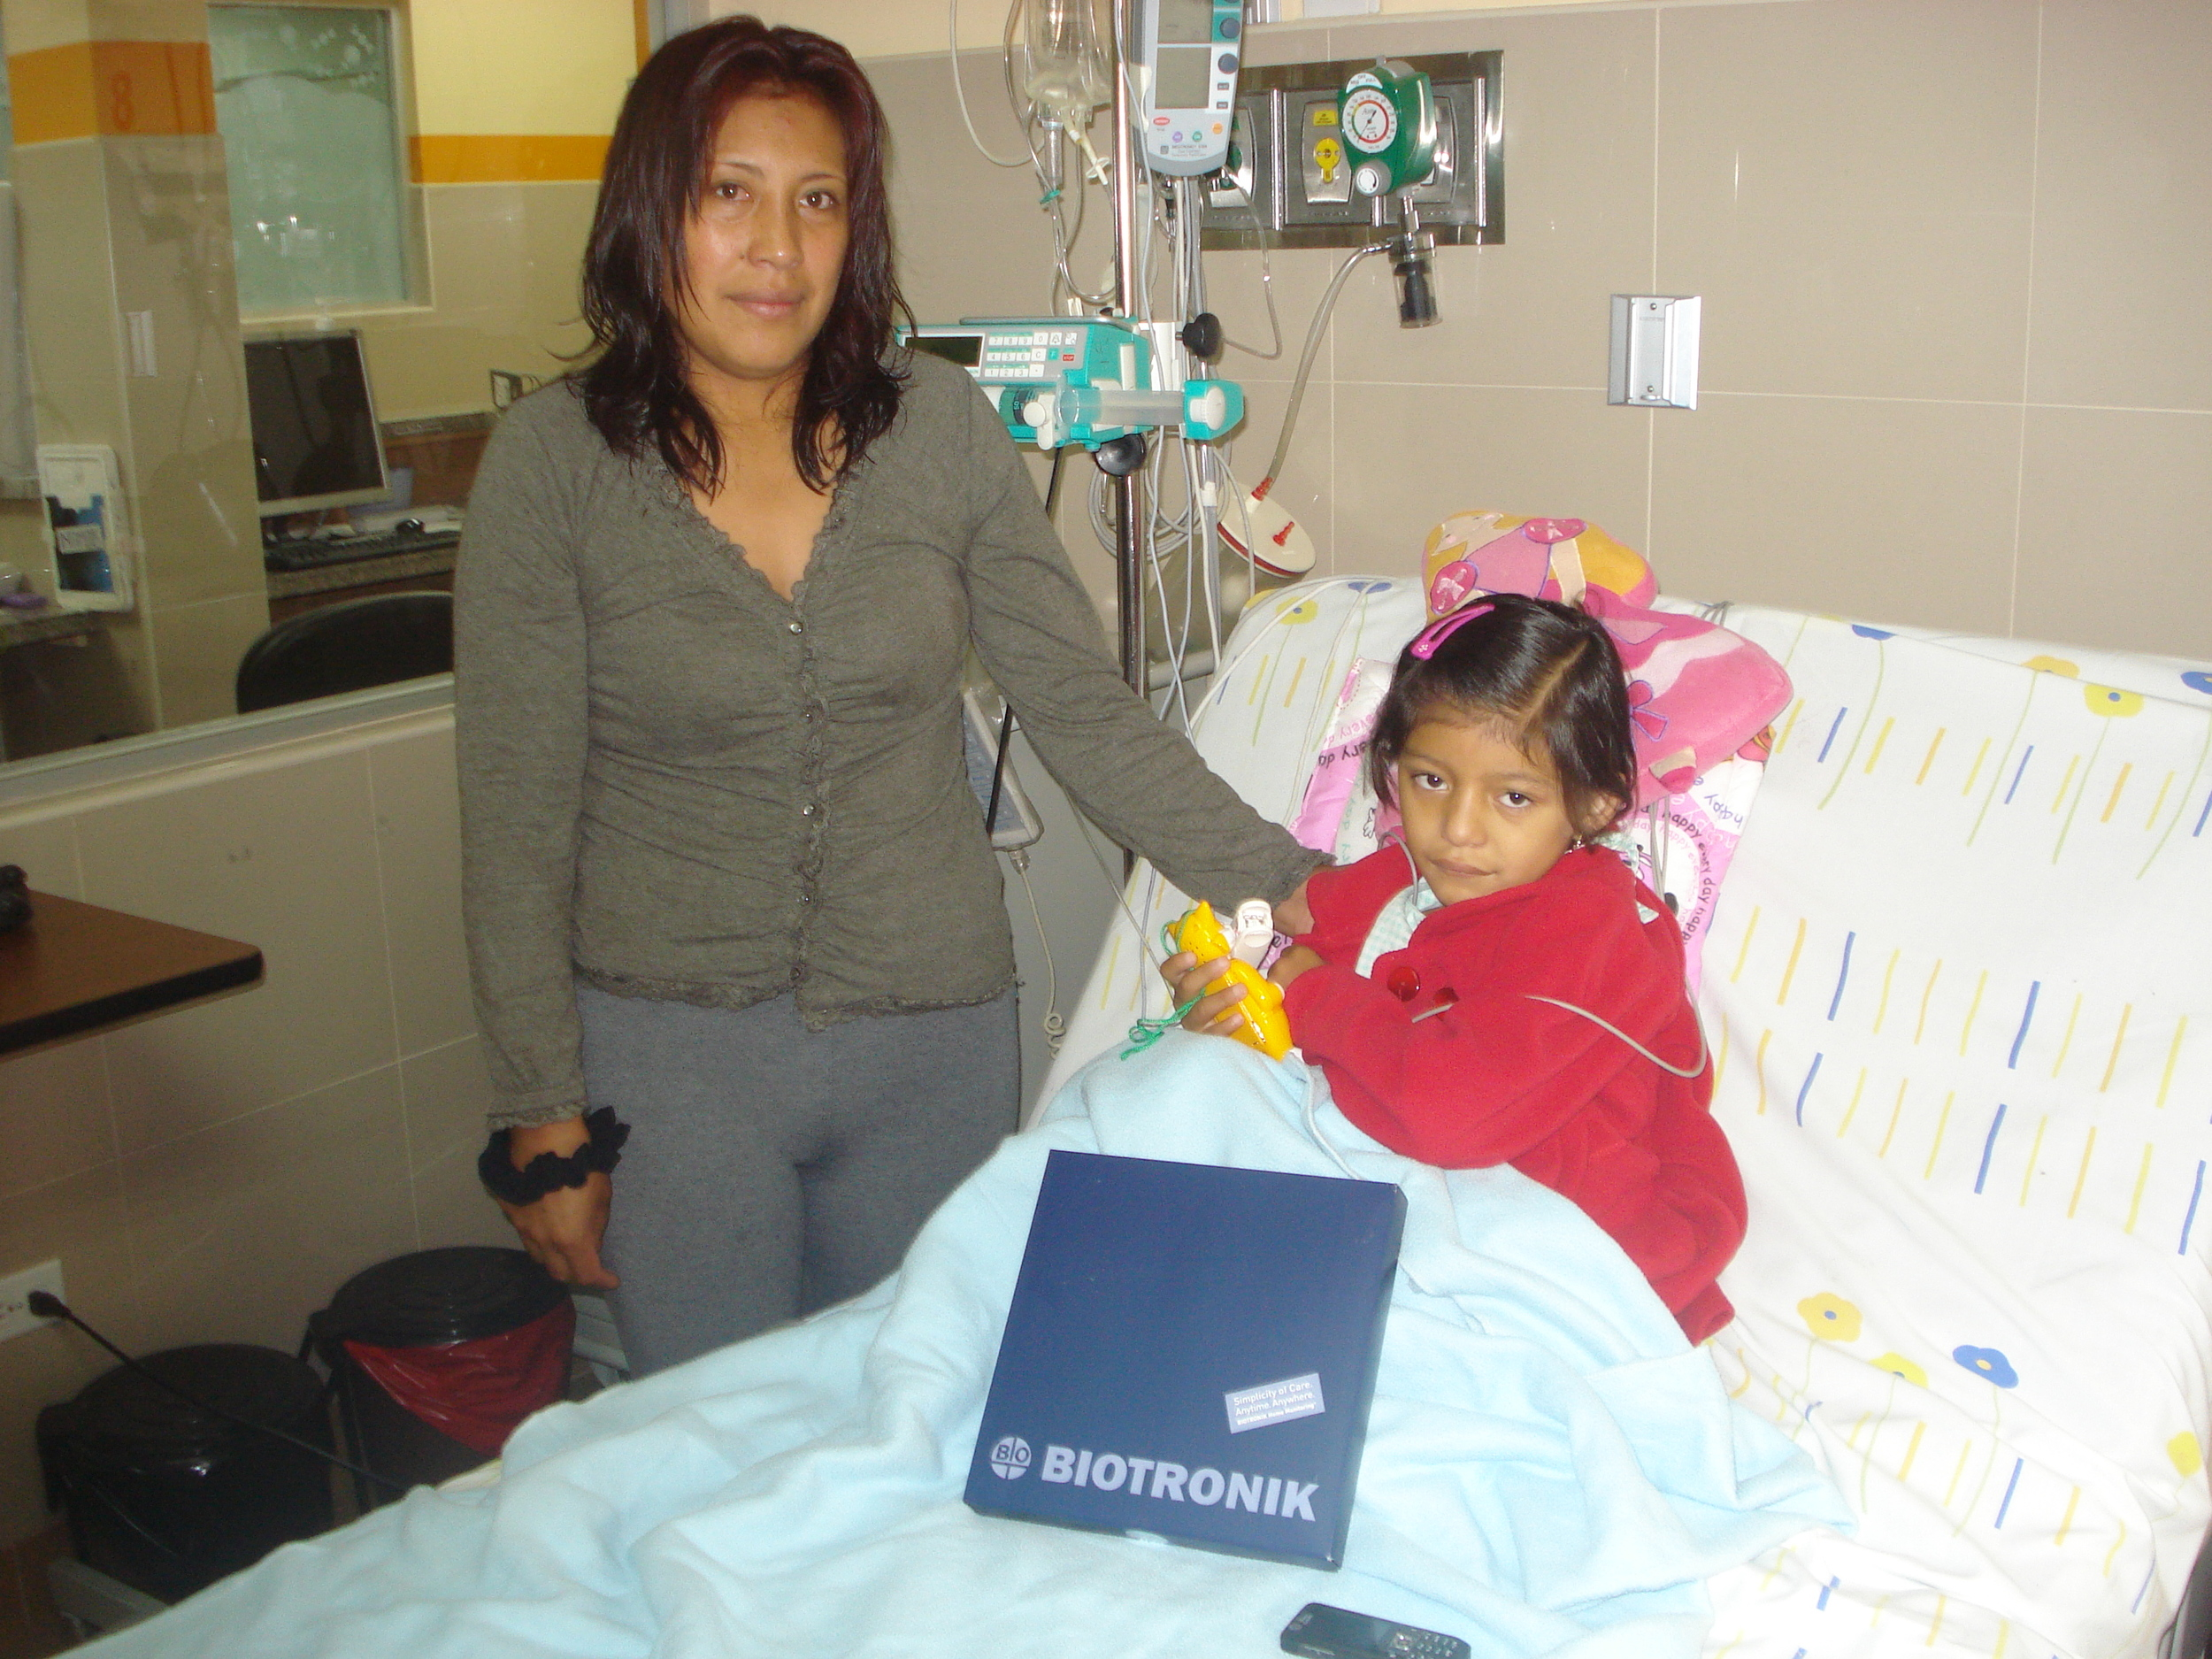 First life saved with Biotronik device